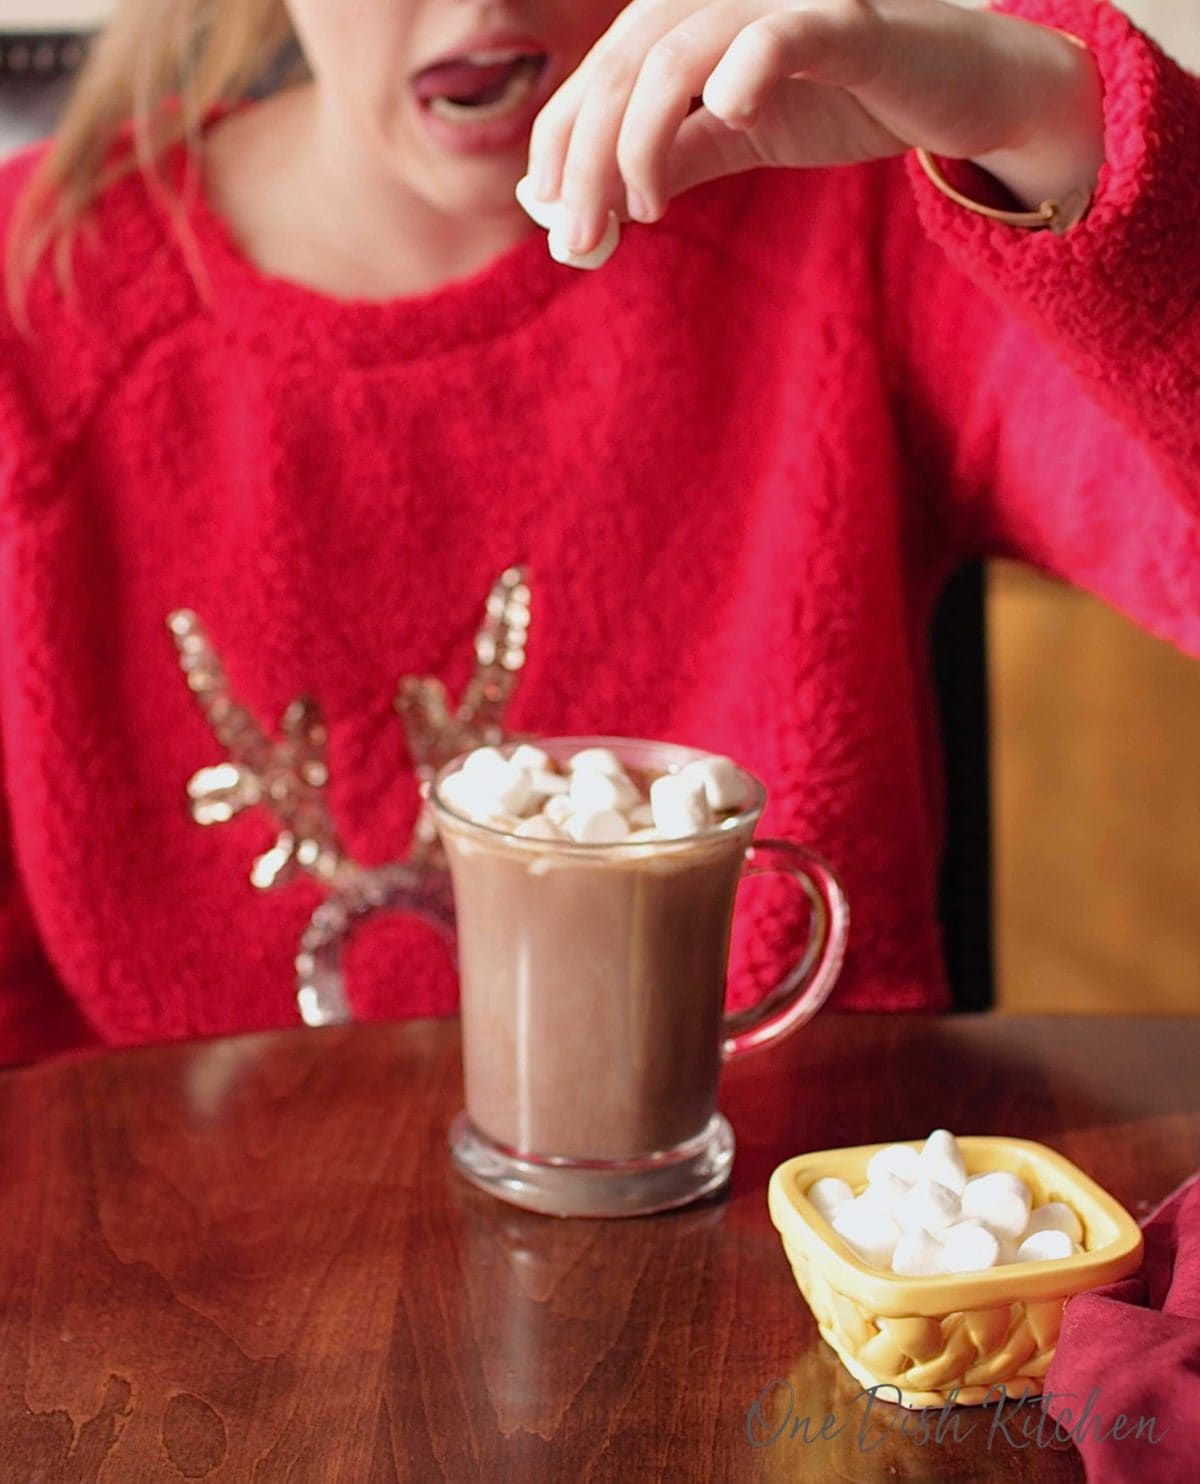 A young girl adding mini marshmallows to a cup of hot chocolate